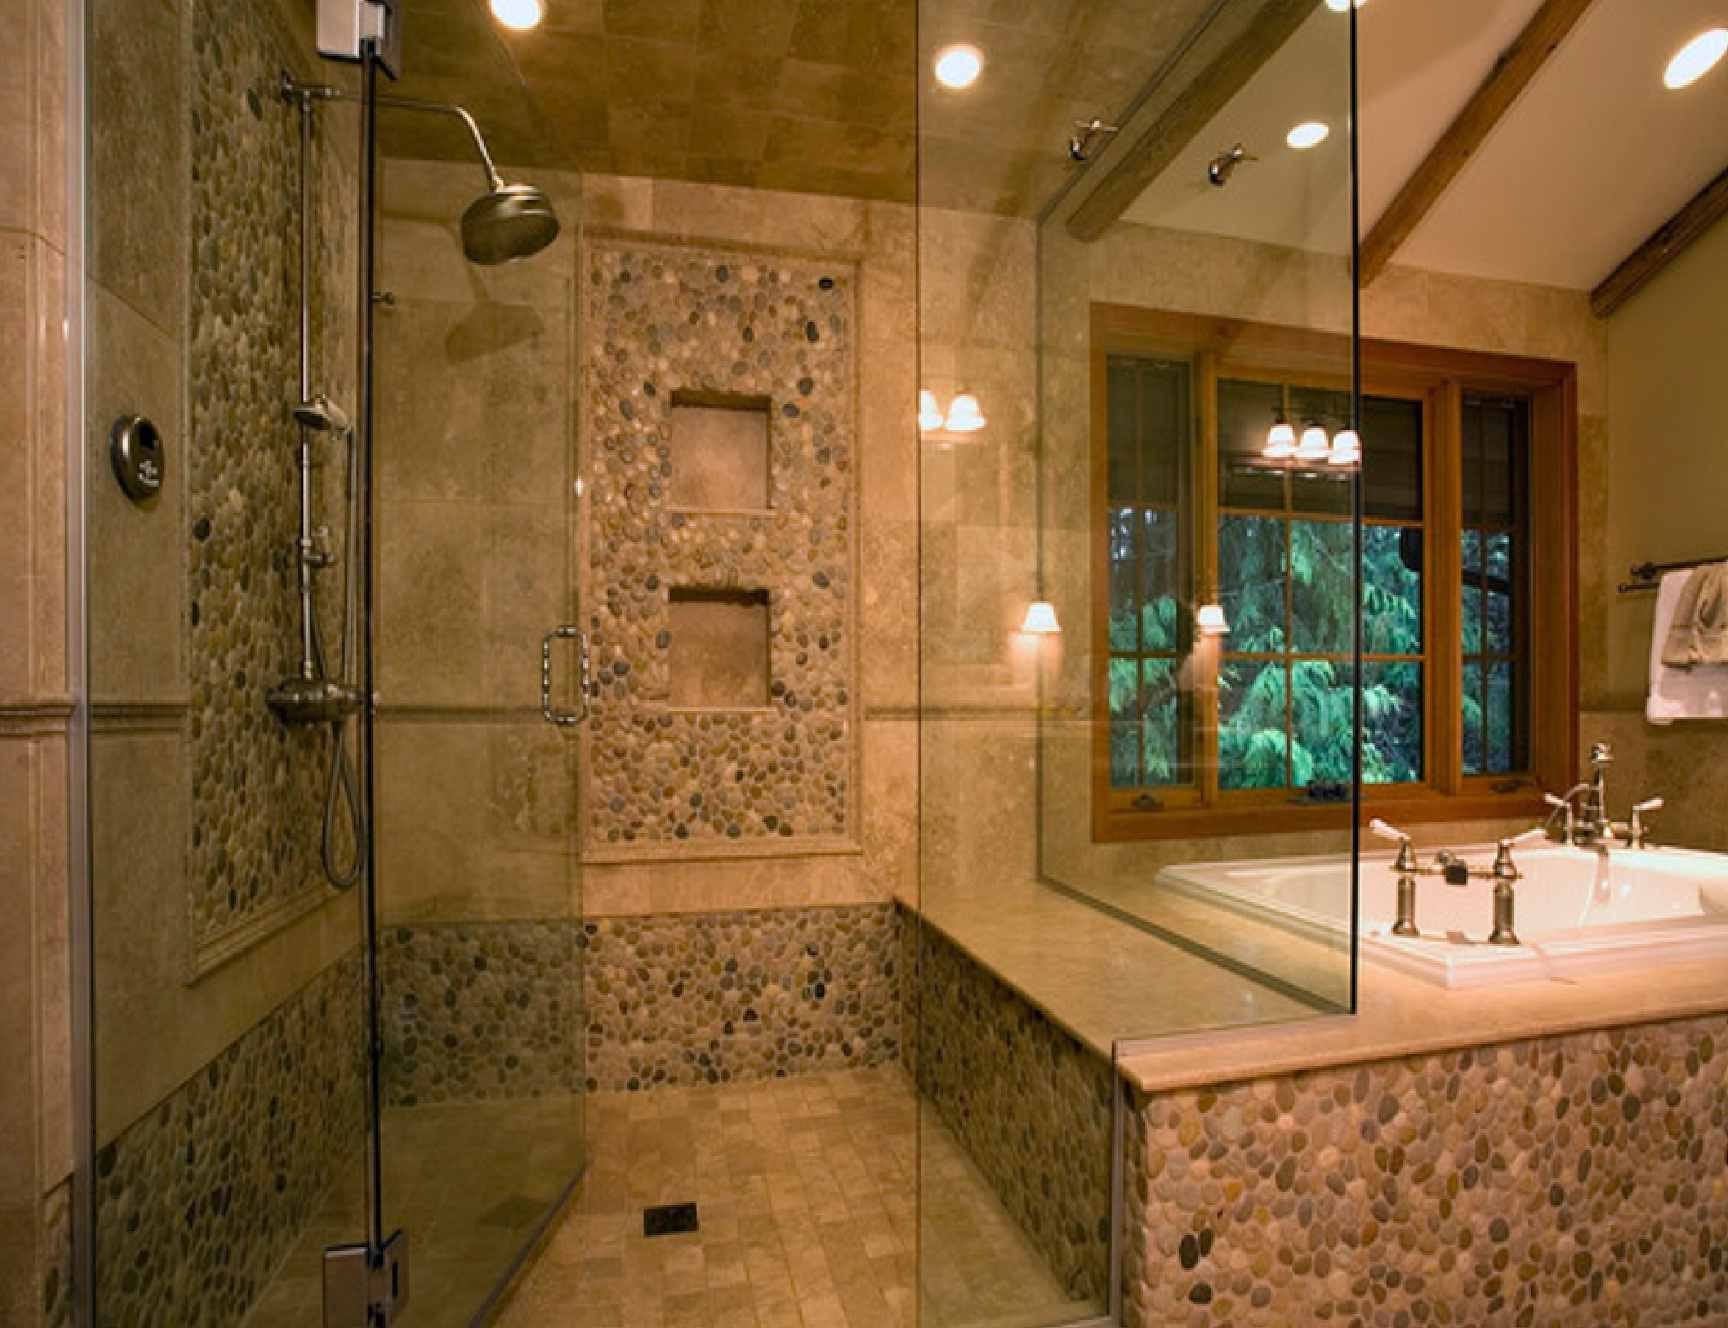 Natural Stone Bathroom Designs : Natural Stone Tile Bathroom Pictures With  Brown Natural Stone Flooring And Bathroom Shower Glass Design Then Shower  ...